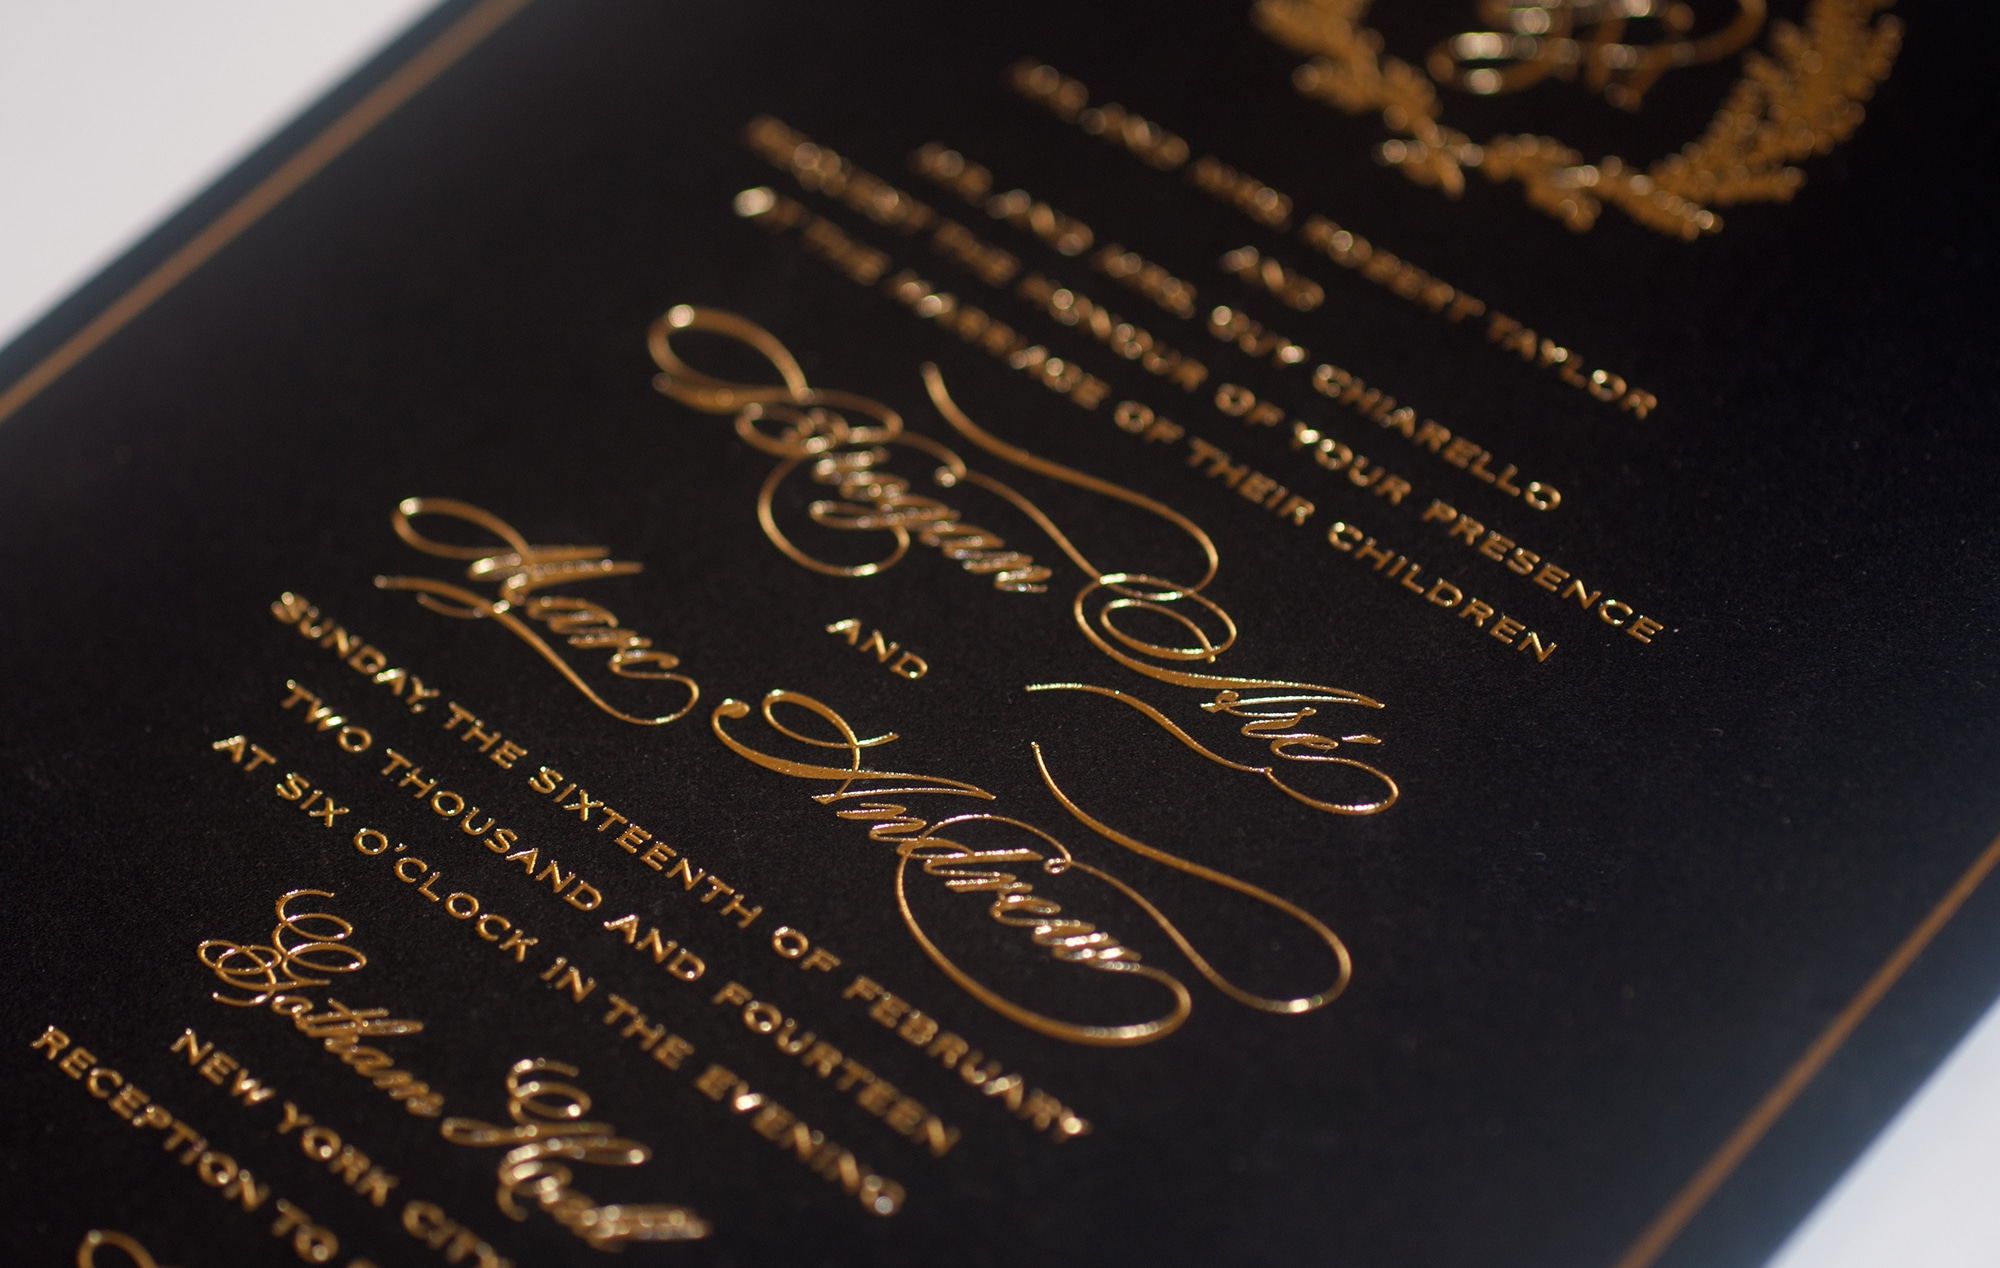 Gold foil calligraphy on black